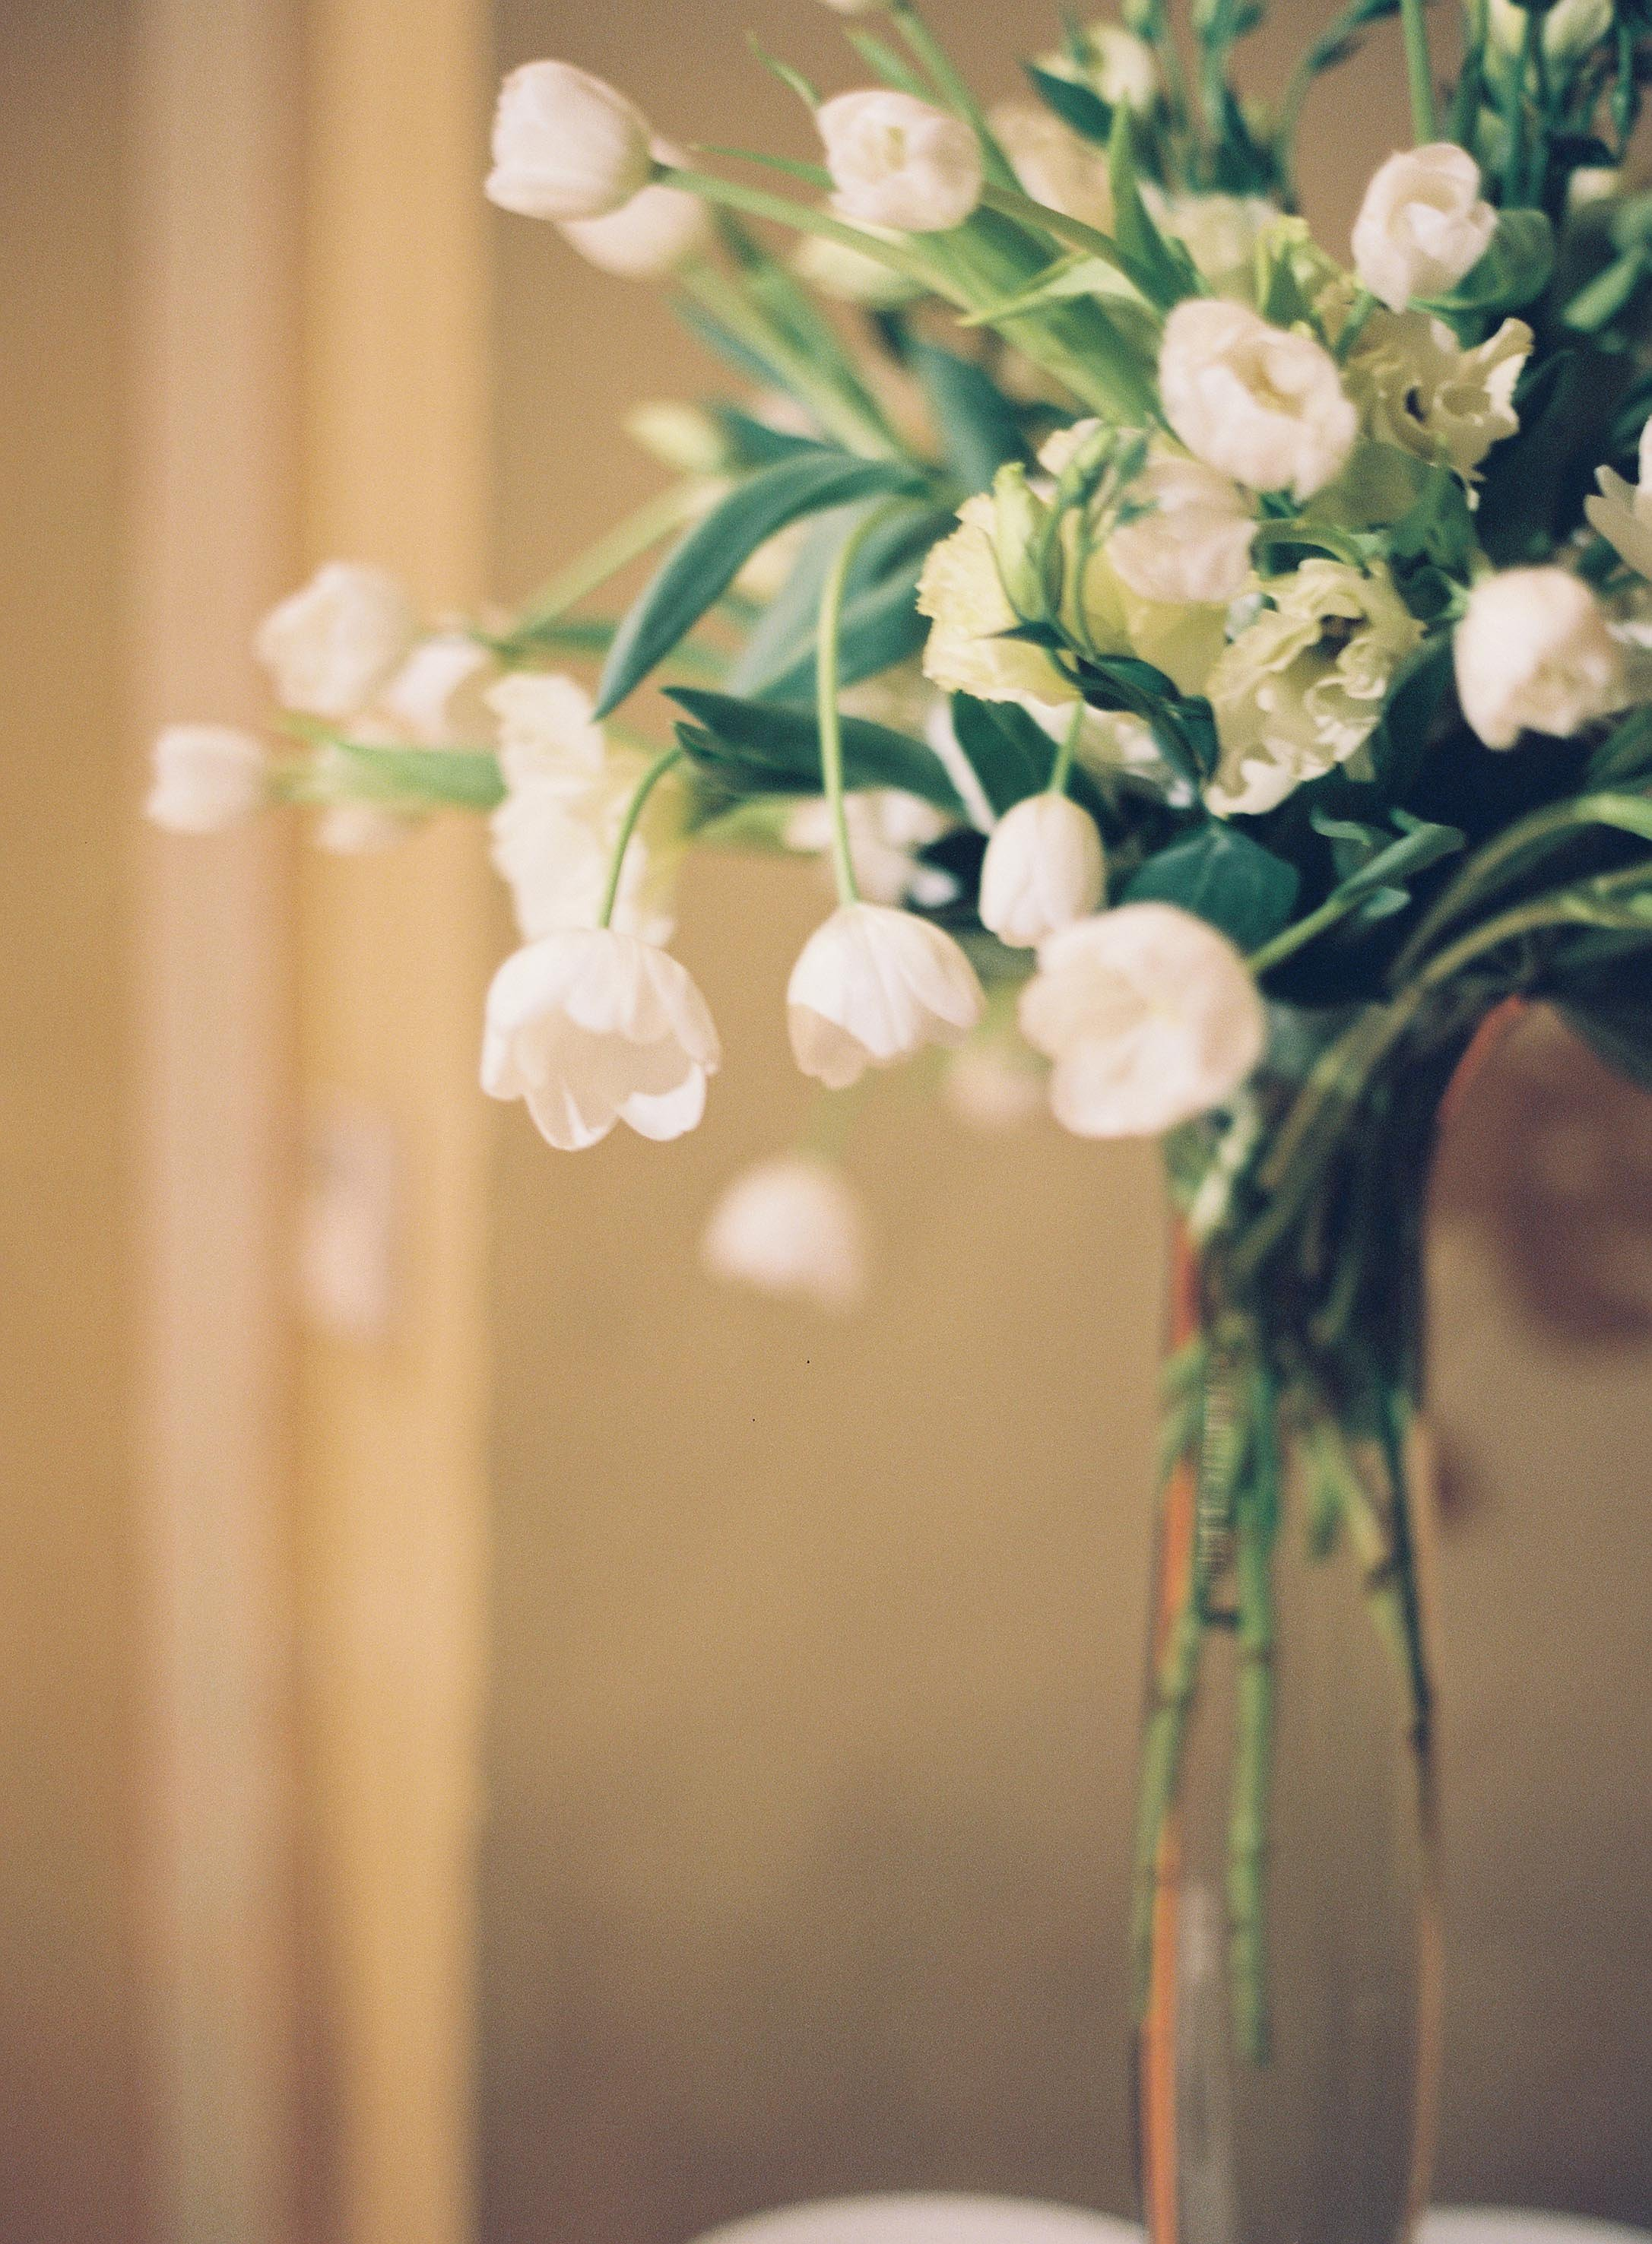 Wedding Planning Tips   Sapphire Events   Wedding Planner   Rylee Hitchner Photography   How to Use Pinterest   Tulip Centerpiece   White Flowers   White and Green Wedding